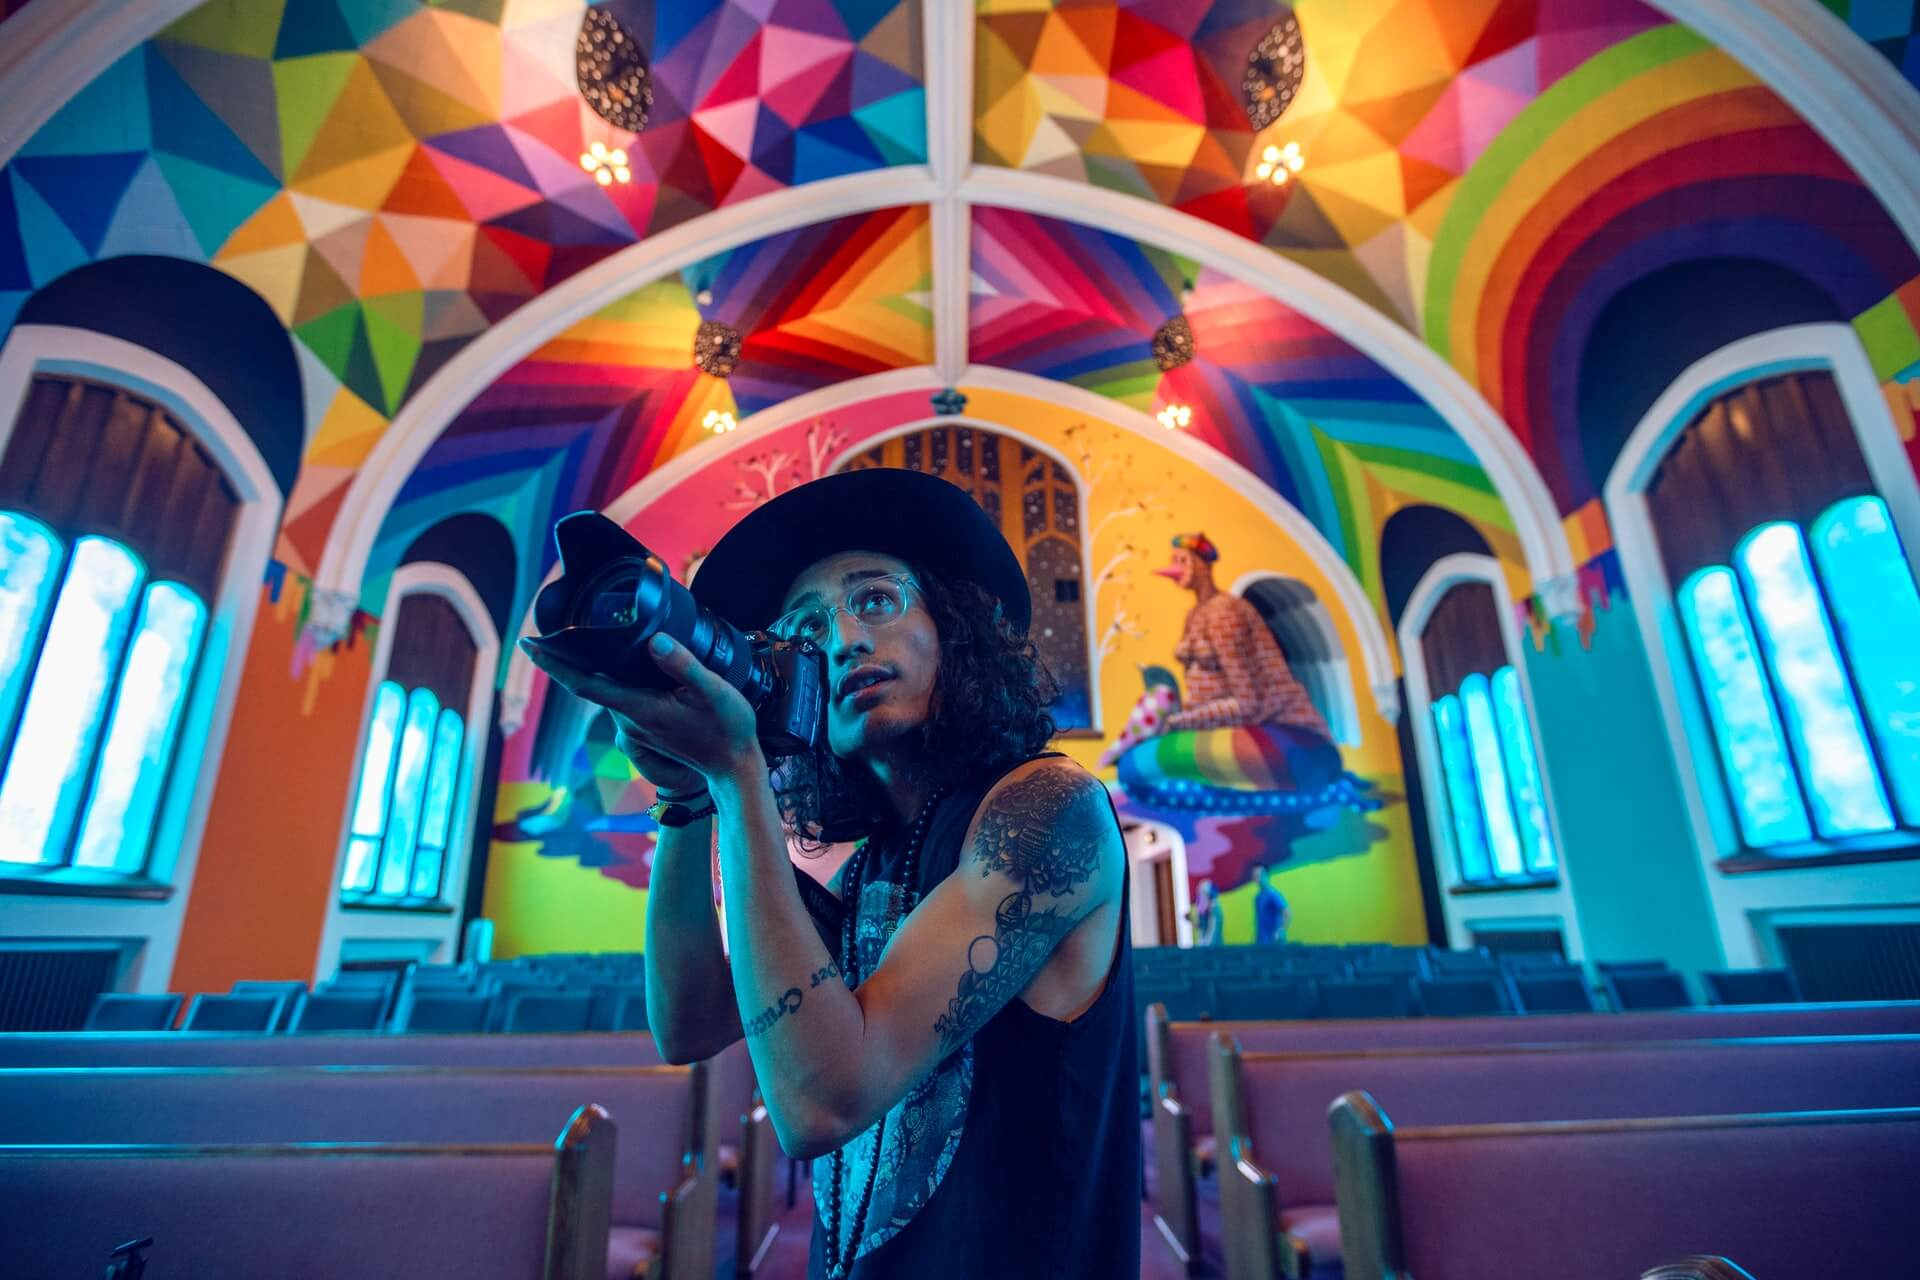 A man with a camera takes pictures underneath a colorful ceiling.